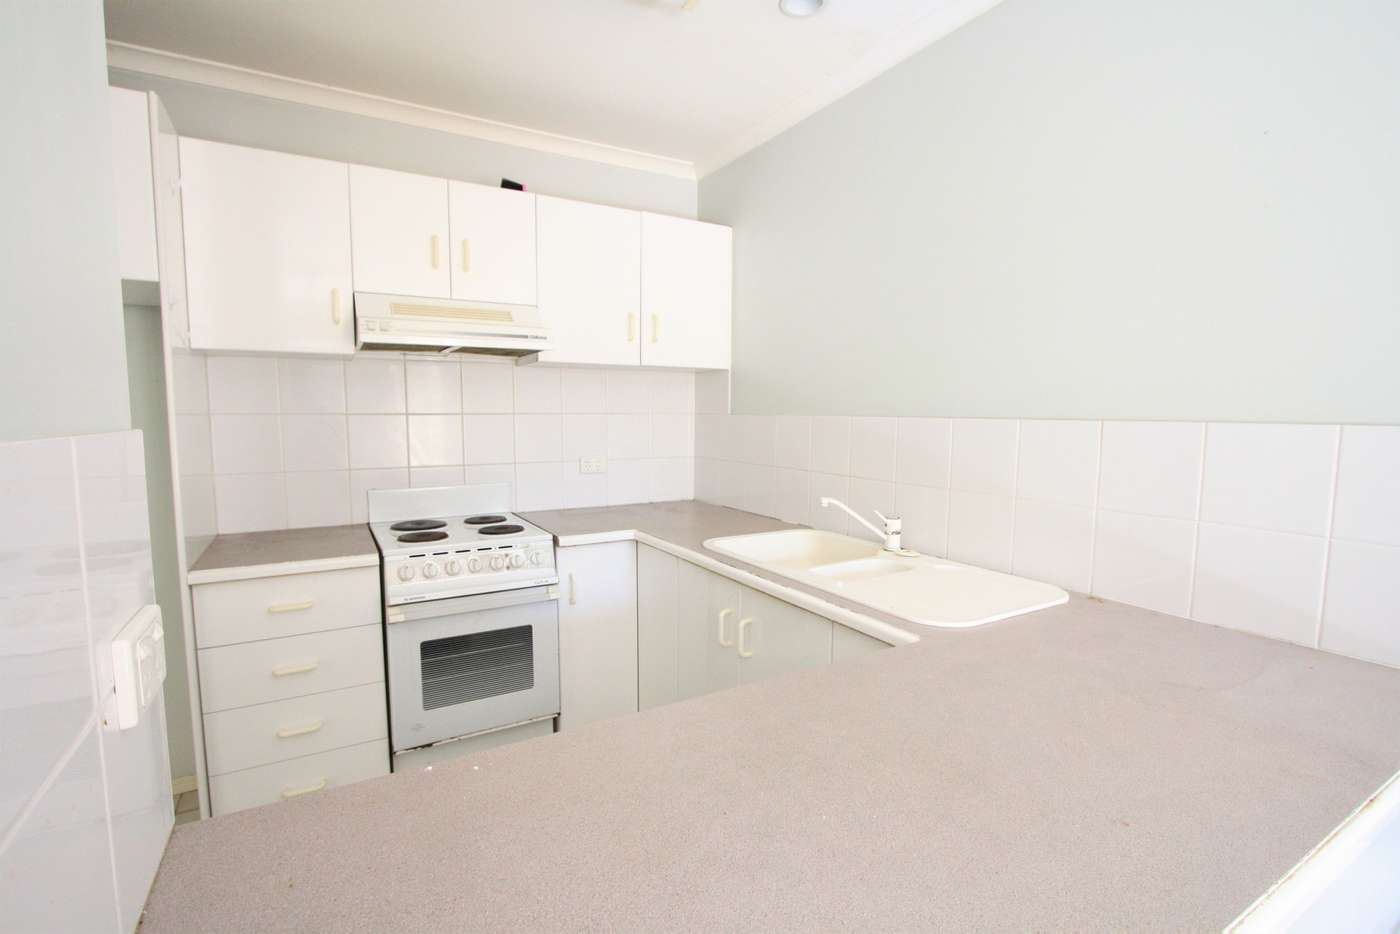 Sixth view of Homely unit listing, 2/60 Rialto Street, Coorparoo QLD 4151